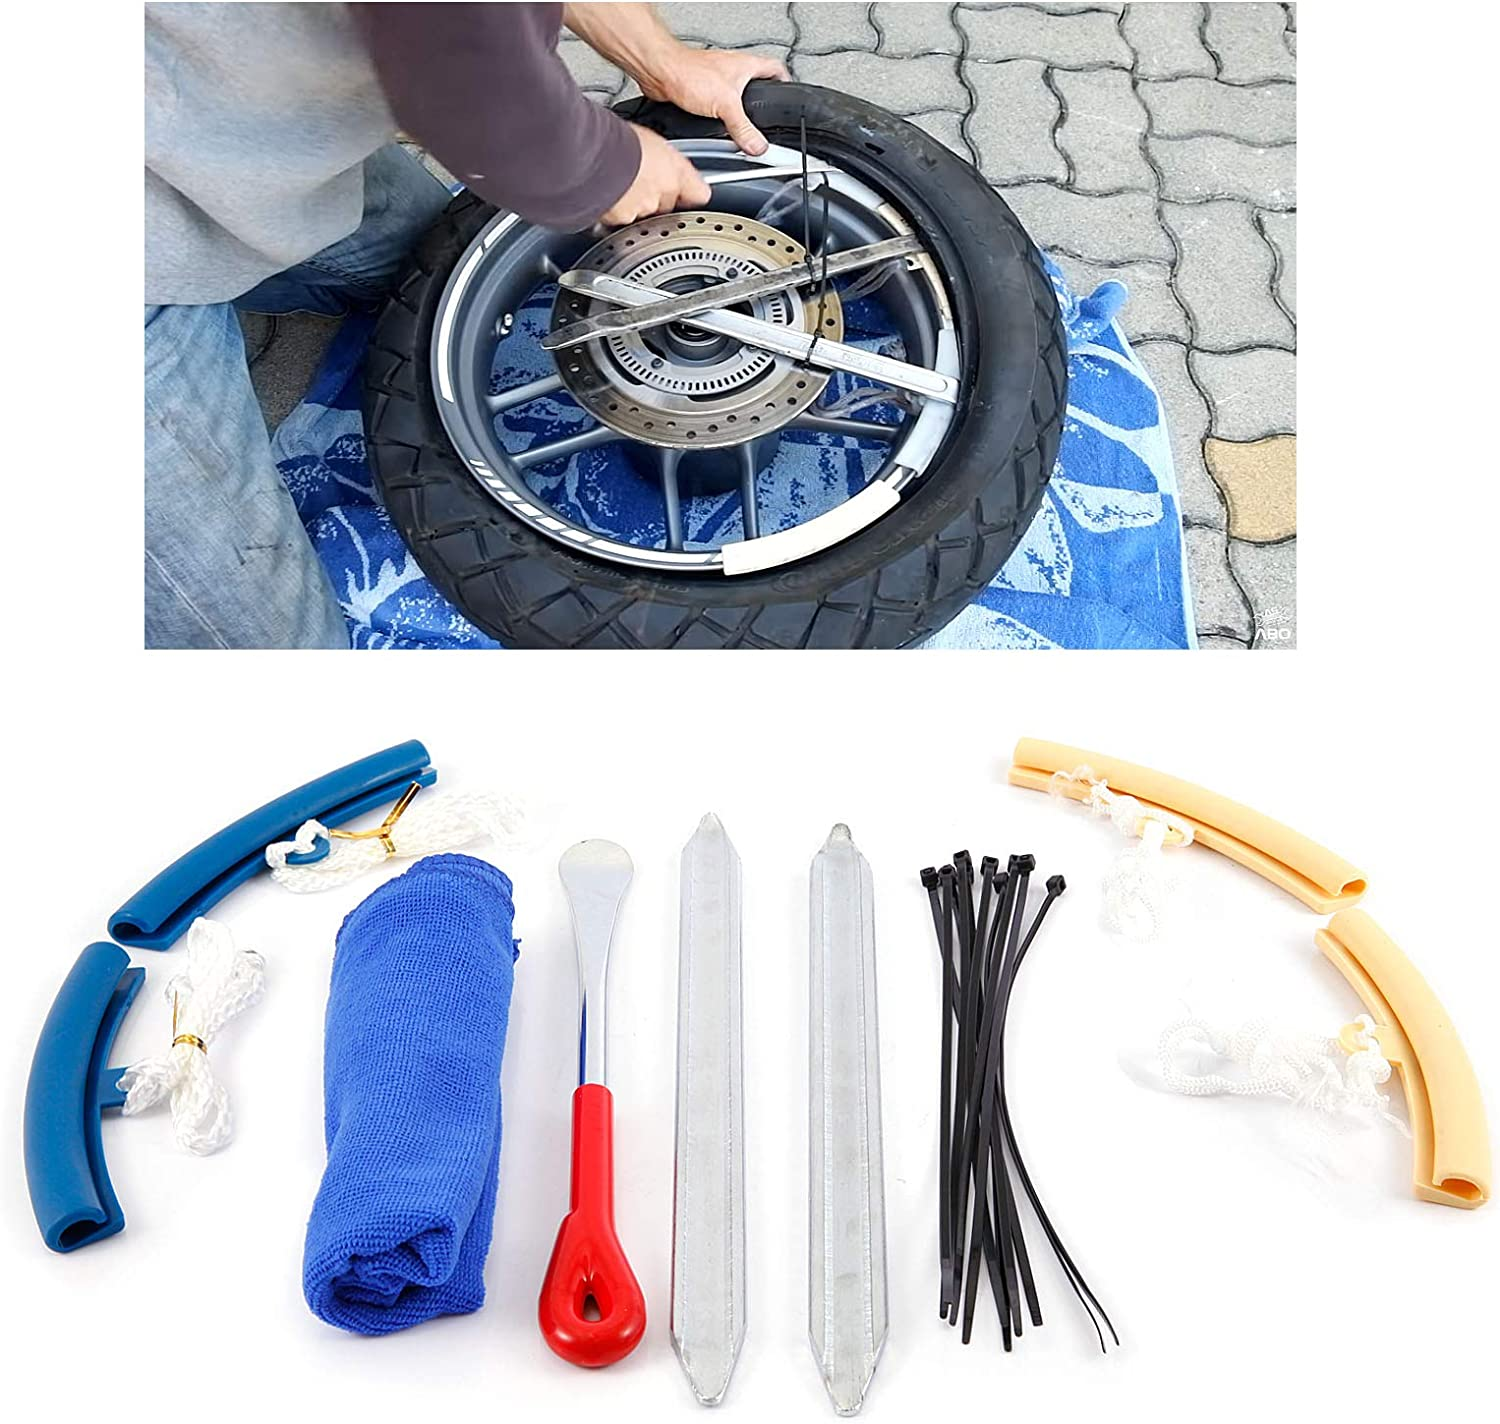 SurePromise Tire Lever Spoon Tyre Removal Tool Kit with 4pcs Wheel Rim Protector Cable Tie and Cleaning Towel Kit for Car Motorcycle Mountain Bike Tire Changing Removing